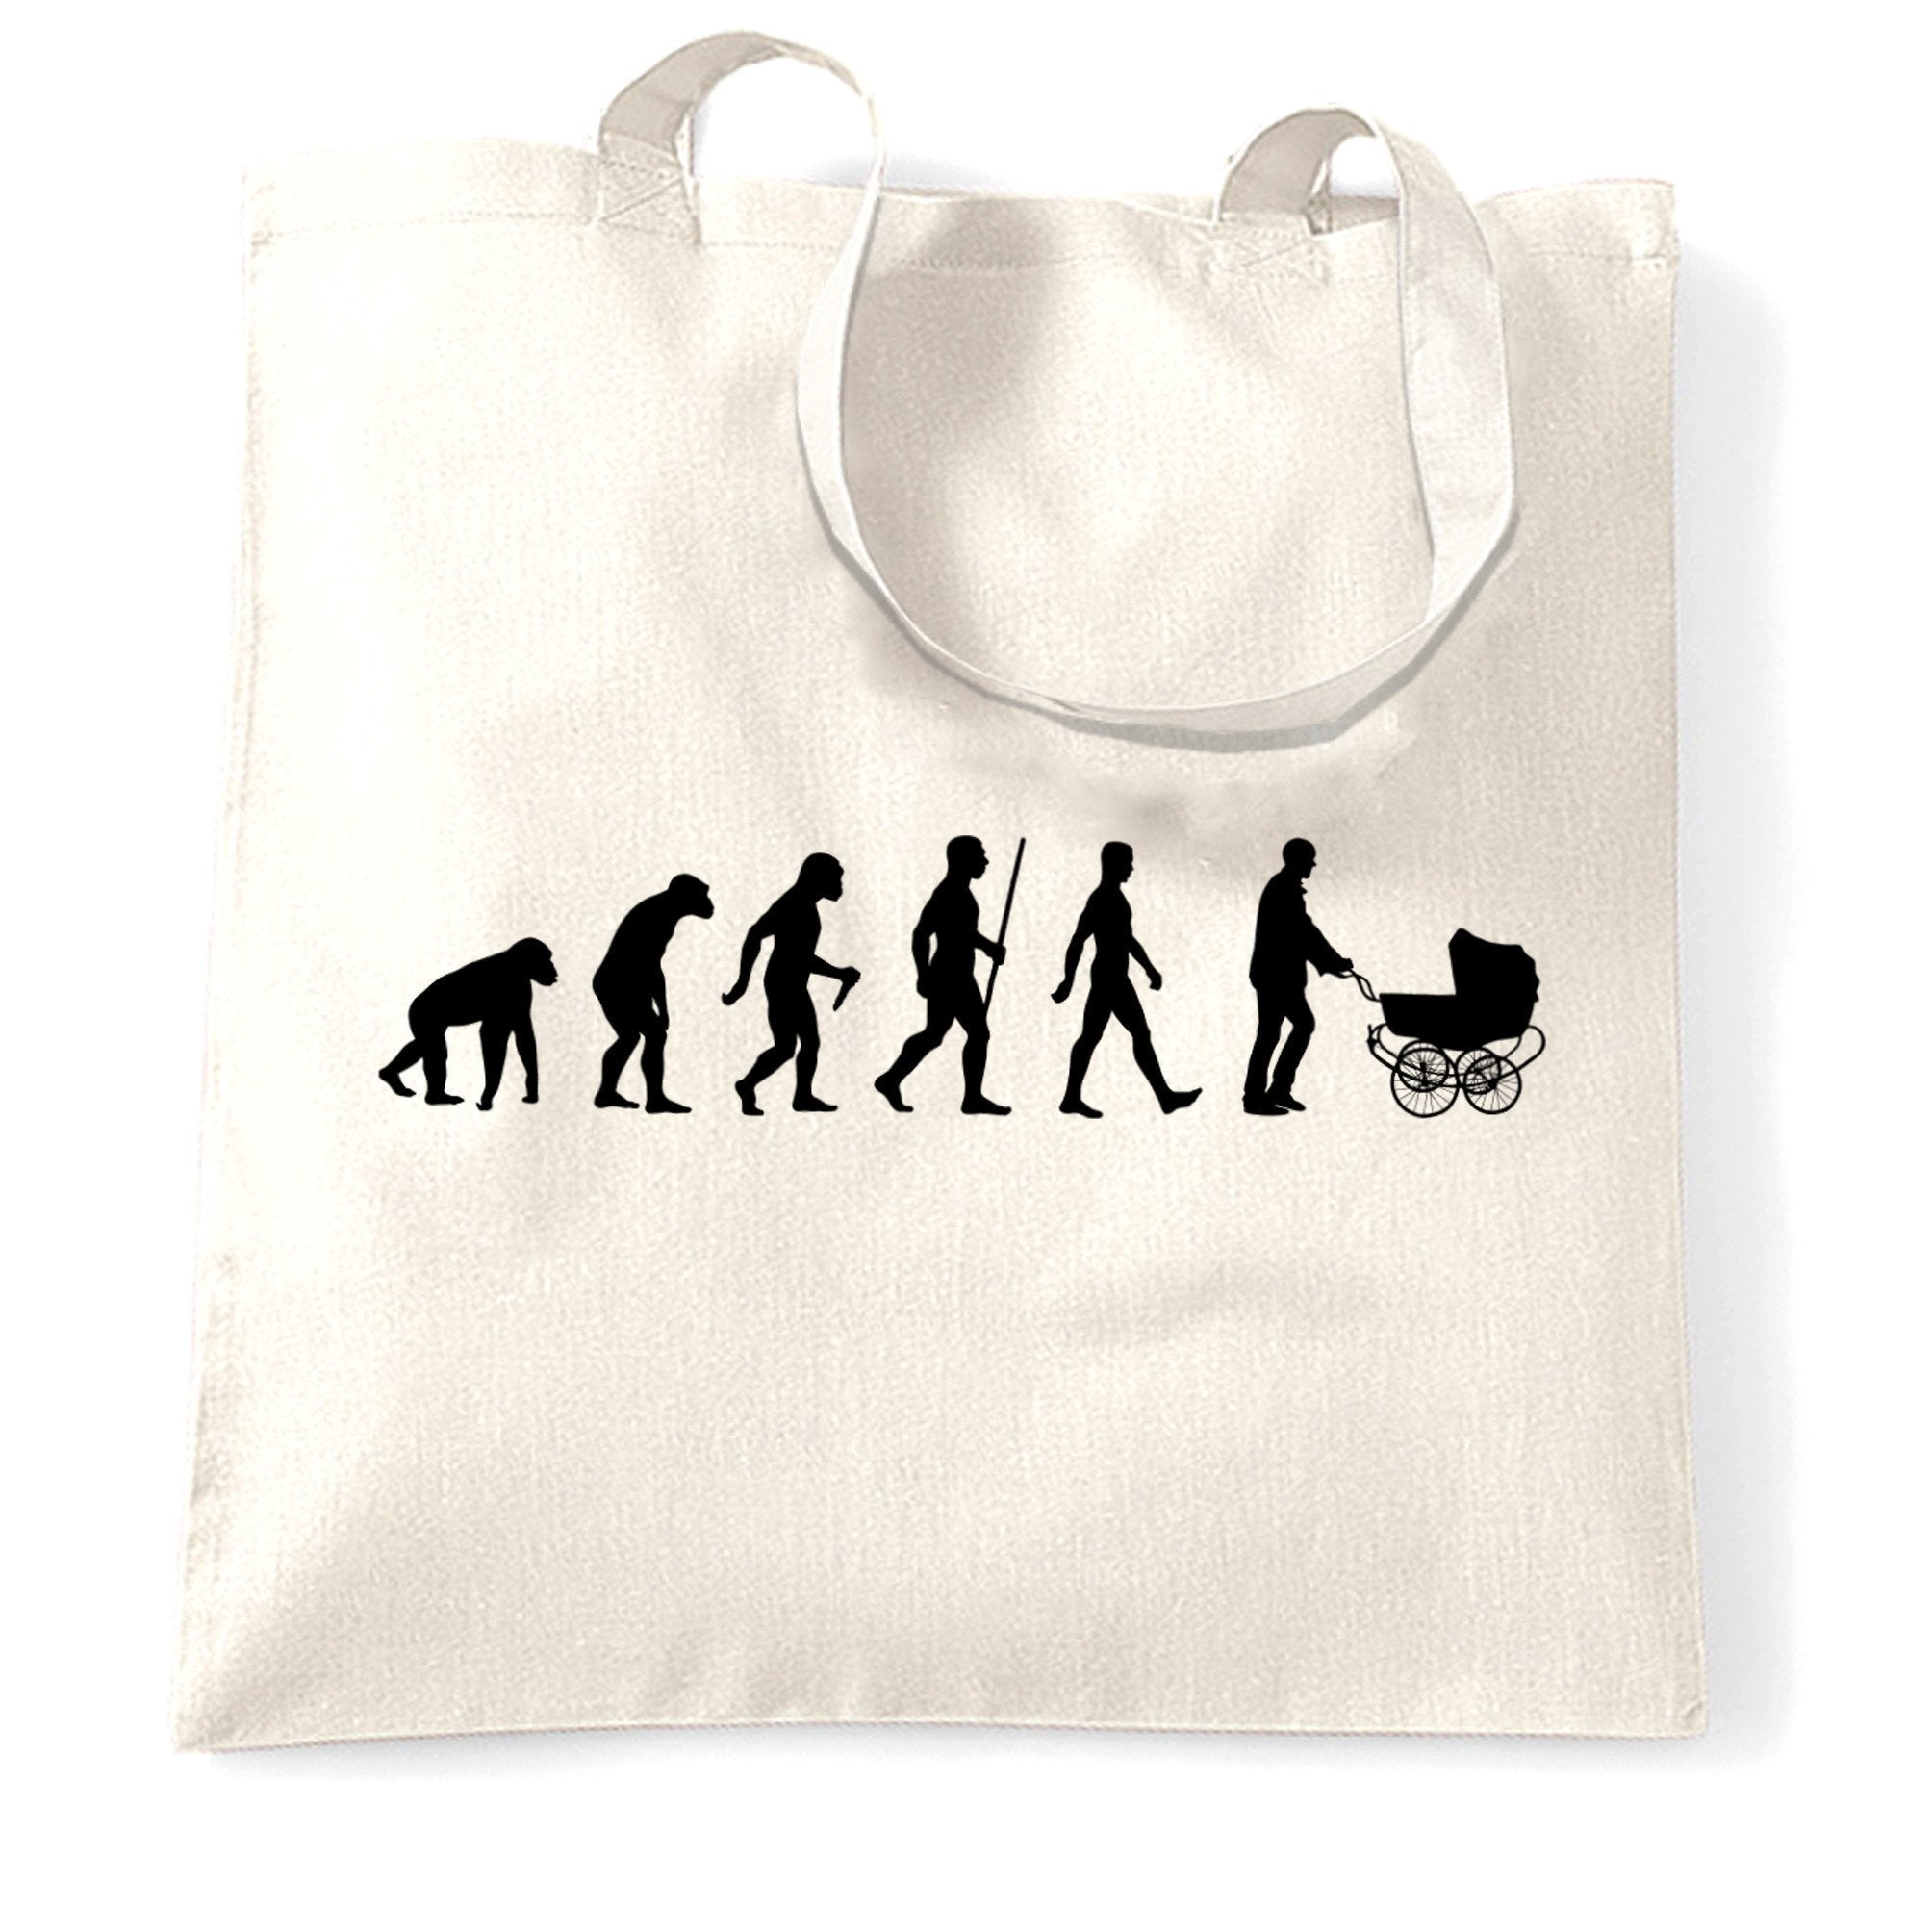 Parenthood Tote Bag Evolution Of A Family New Born Baby